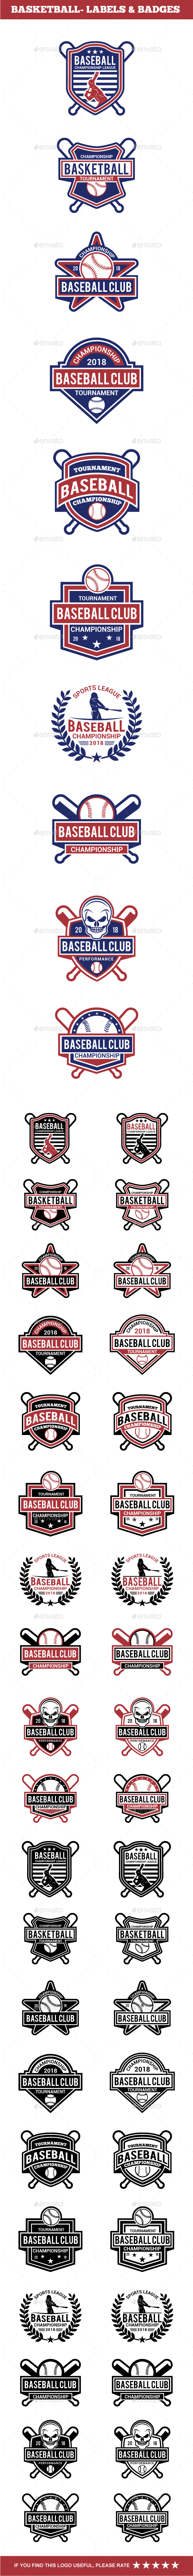 GraphicRiver Baseball Badge & Stickers 4 21043049